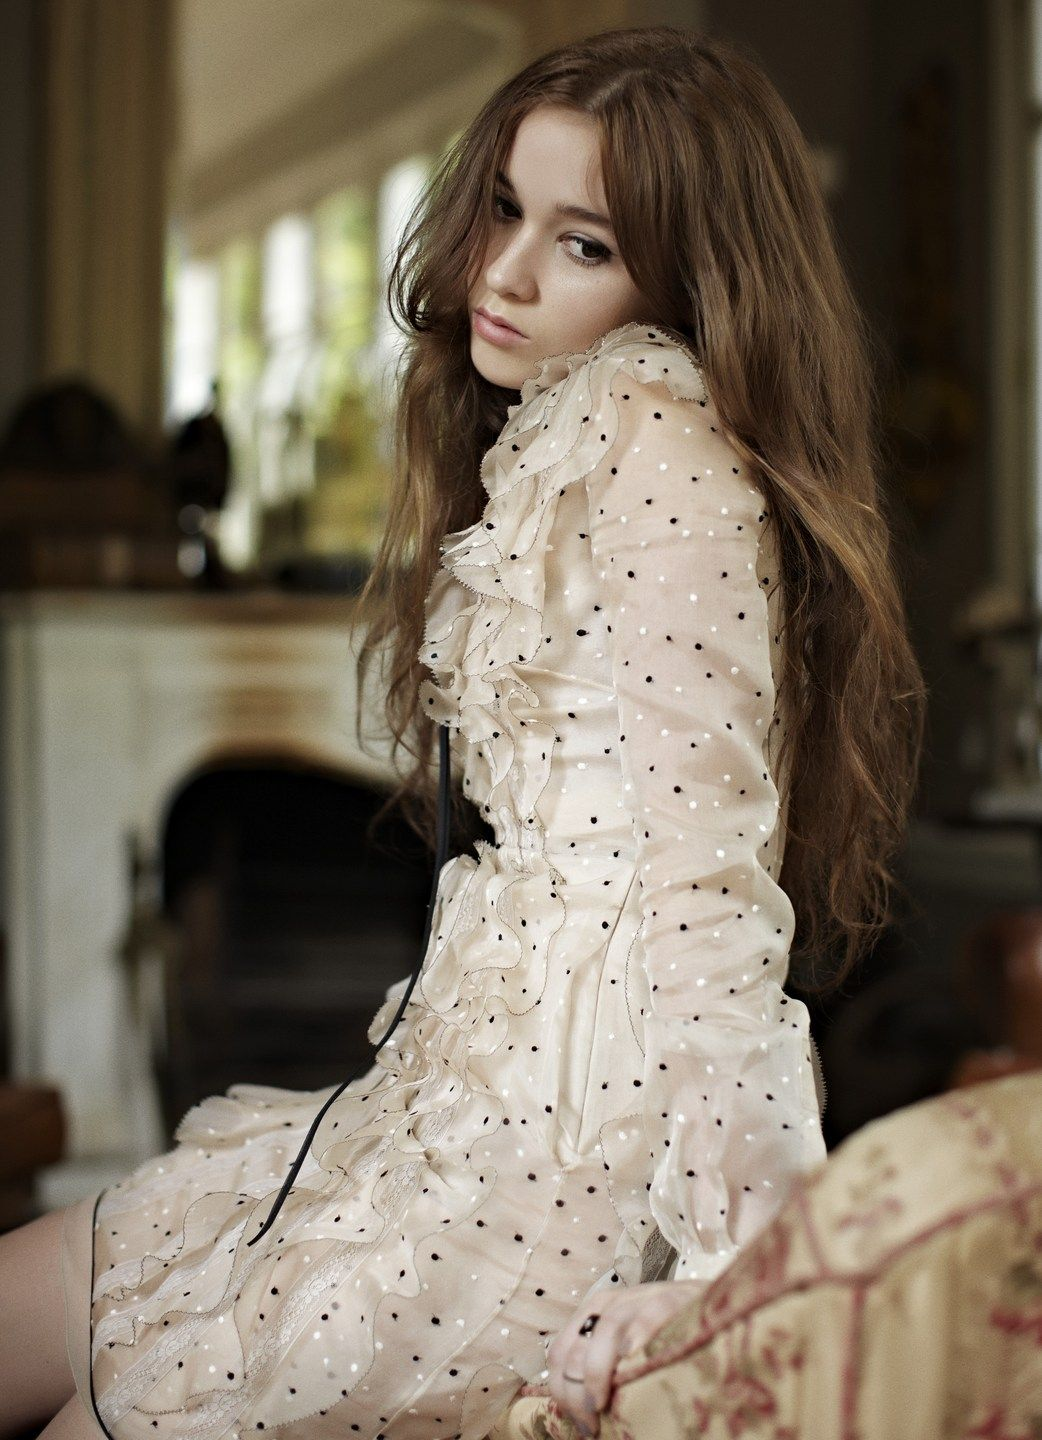 alice englert listalalice englert tumblr, alice englert tumblr gif, alice englert gif hunt, alice englert and alden ehrenreich, alice englert needle and thread lyrics, alice englert height, alice englert icons, alice englert needle and thread mp3, alice englert weight and height, alice englert photo gallery, alice englert gif, alice englert instagram, alice englert listal, alice englert vk, alice englert insta, alice englert needle and thread, alice englert gallery